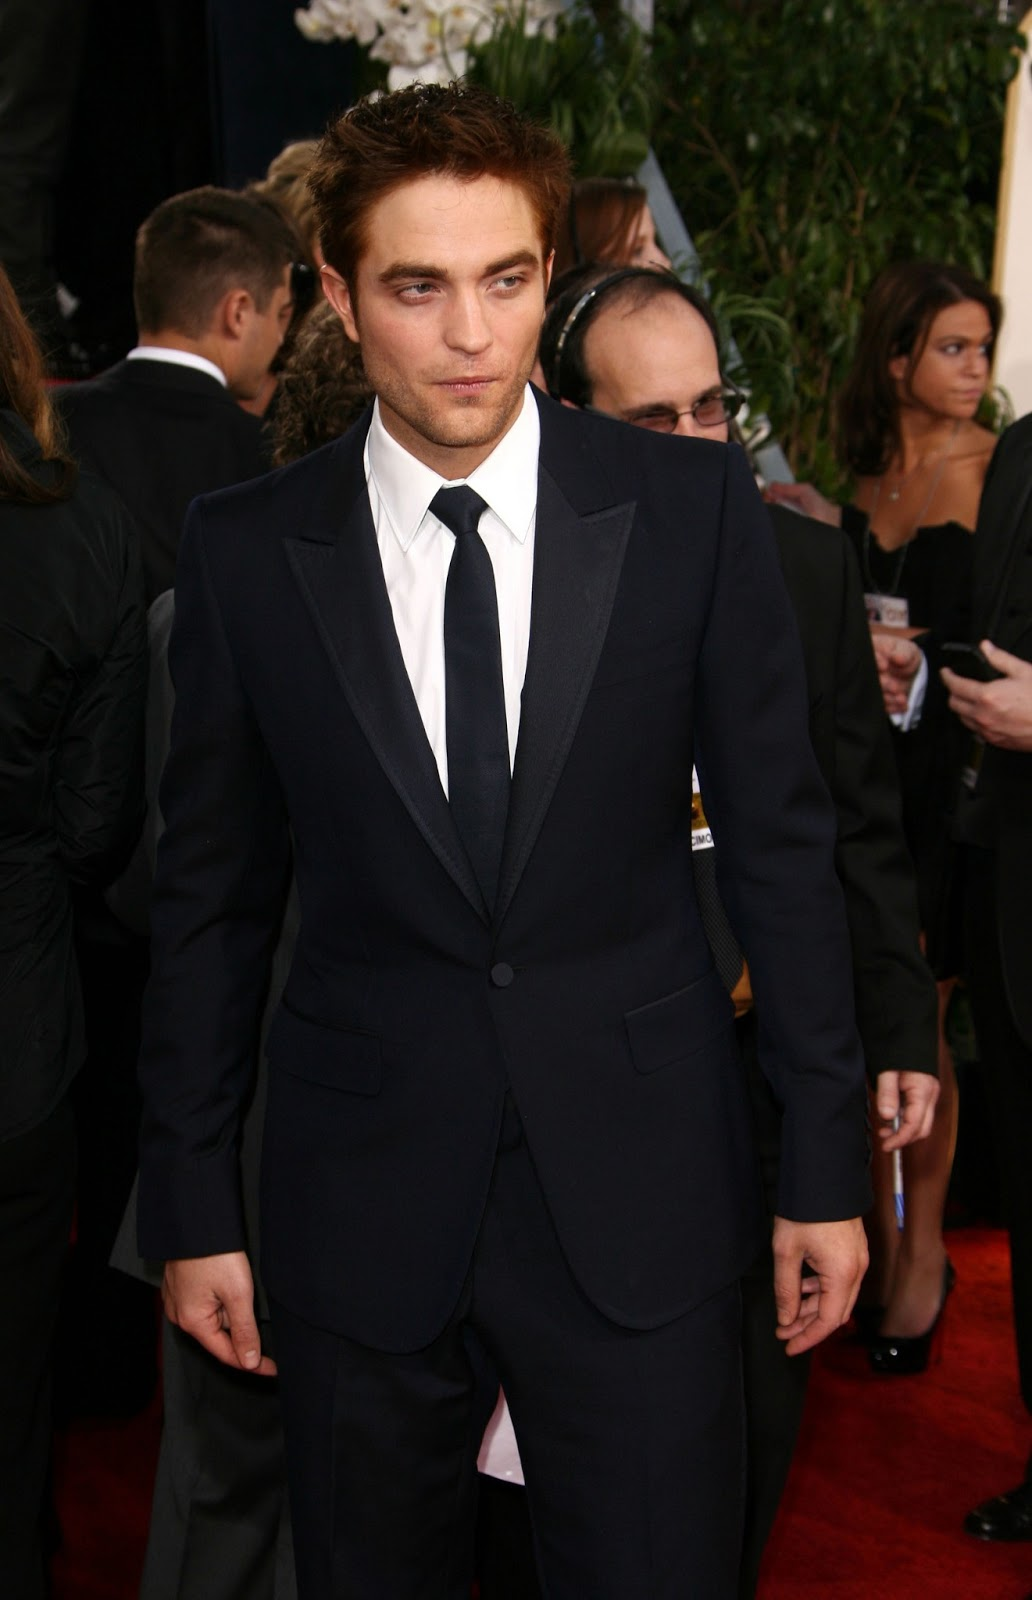 http://4.bp.blogspot.com/-D2v1mu3U6Jk/UPIXvTy6ZdI/AAAAAAAAM1M/Bu9kSegg5gE/s1600/68th-Golden-Globe-Awards-2011-HQ-robert-pattinson-18507951-1651-2560.jpg